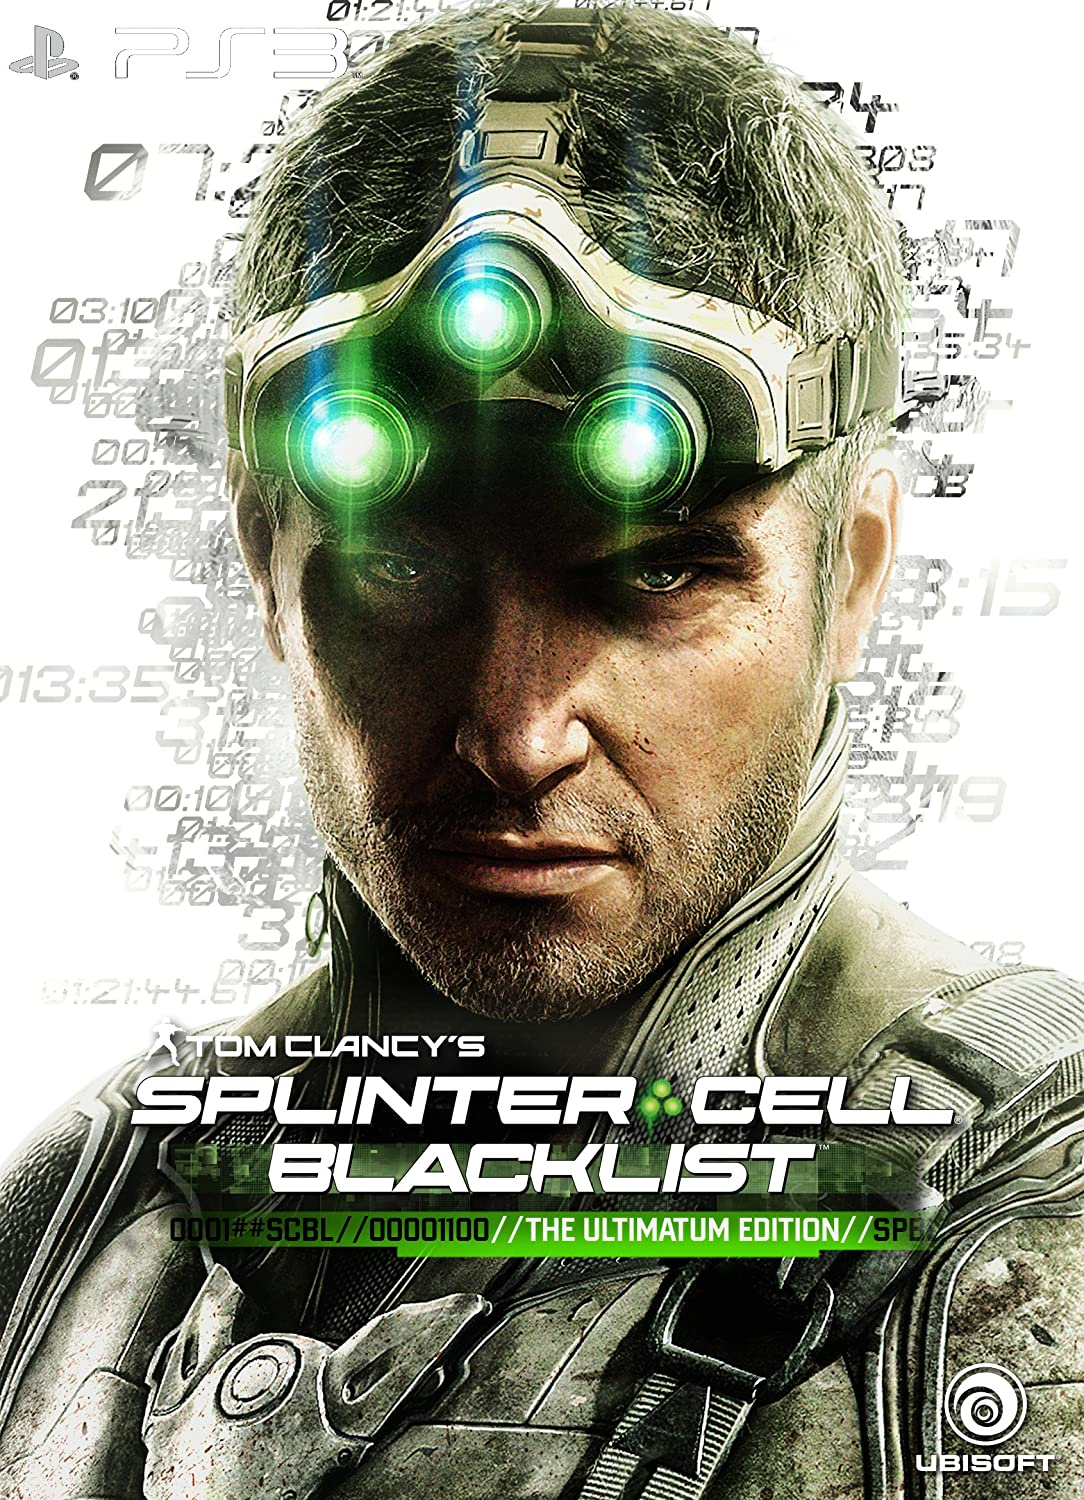 Tom Clancy's Splinter Cell Blacklist Ultimatum Edition